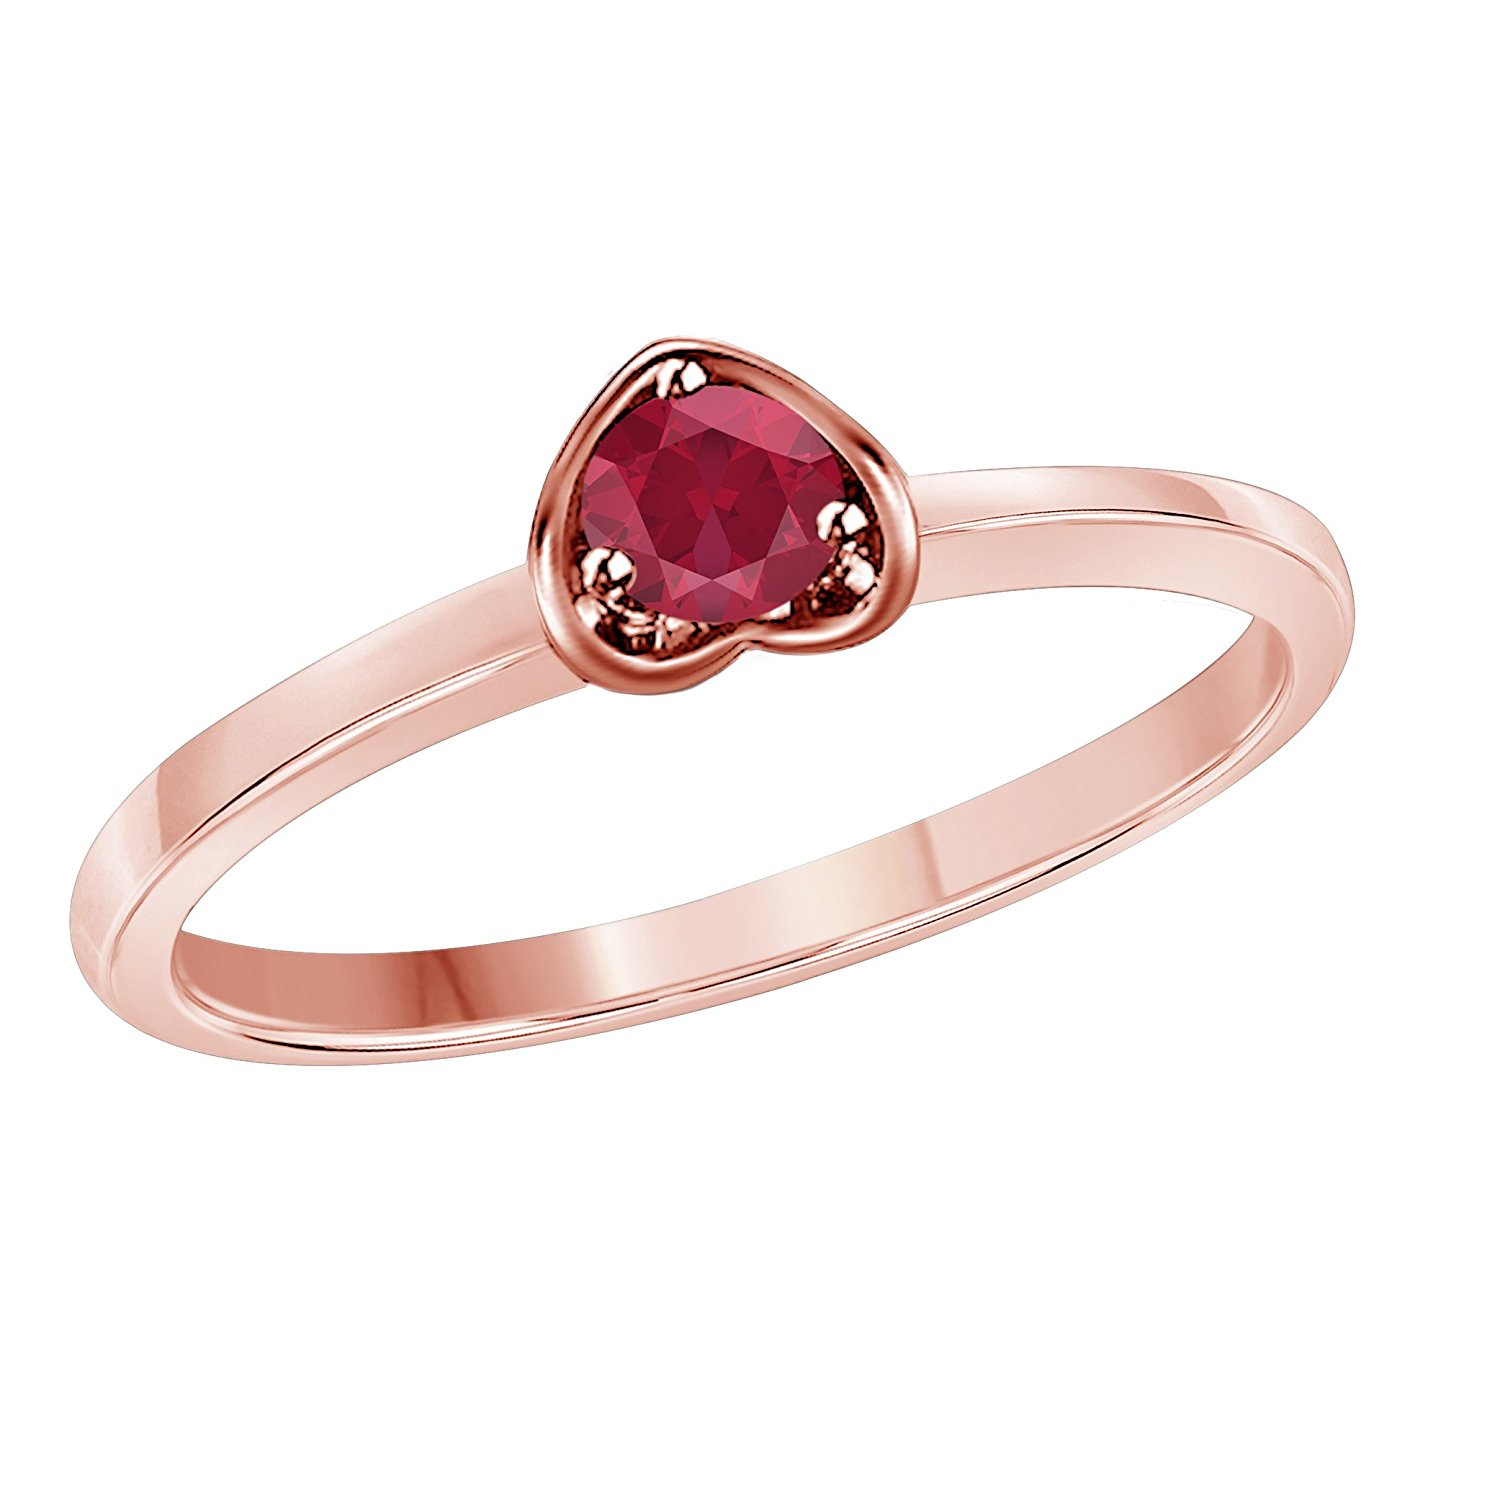 32a8fcc438 Get Quotations · Star Retail Jewelry Round Cut Solitaire Created Red Ruby  Engagement Love Forever Heart Promise Ring in